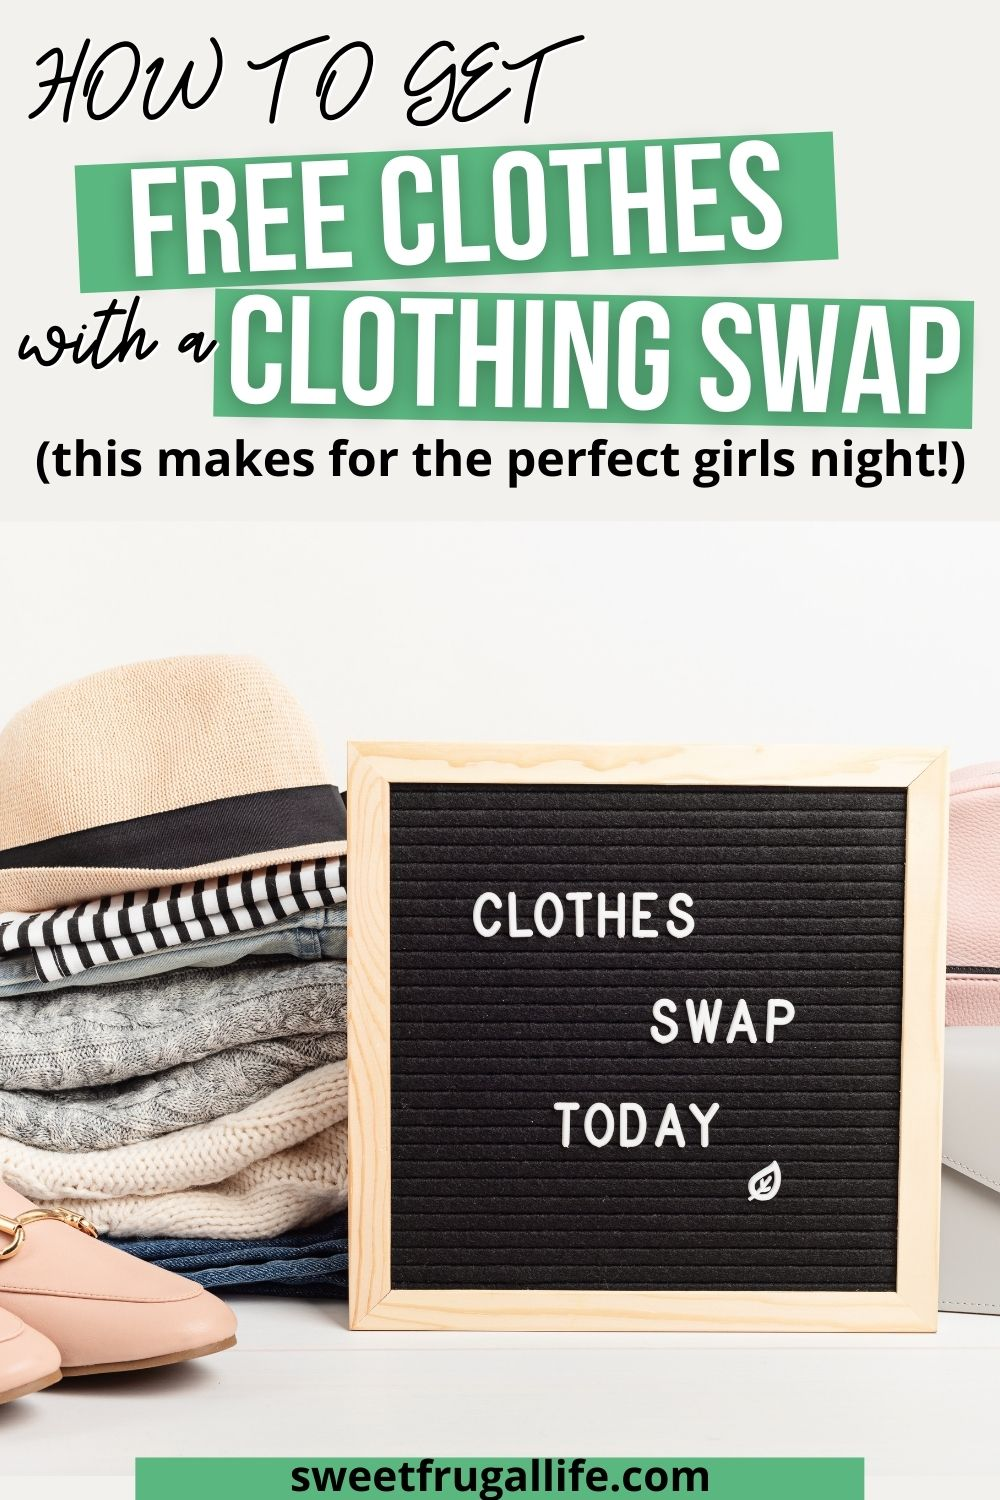 how to get free clothes - fun clothing swap girls night